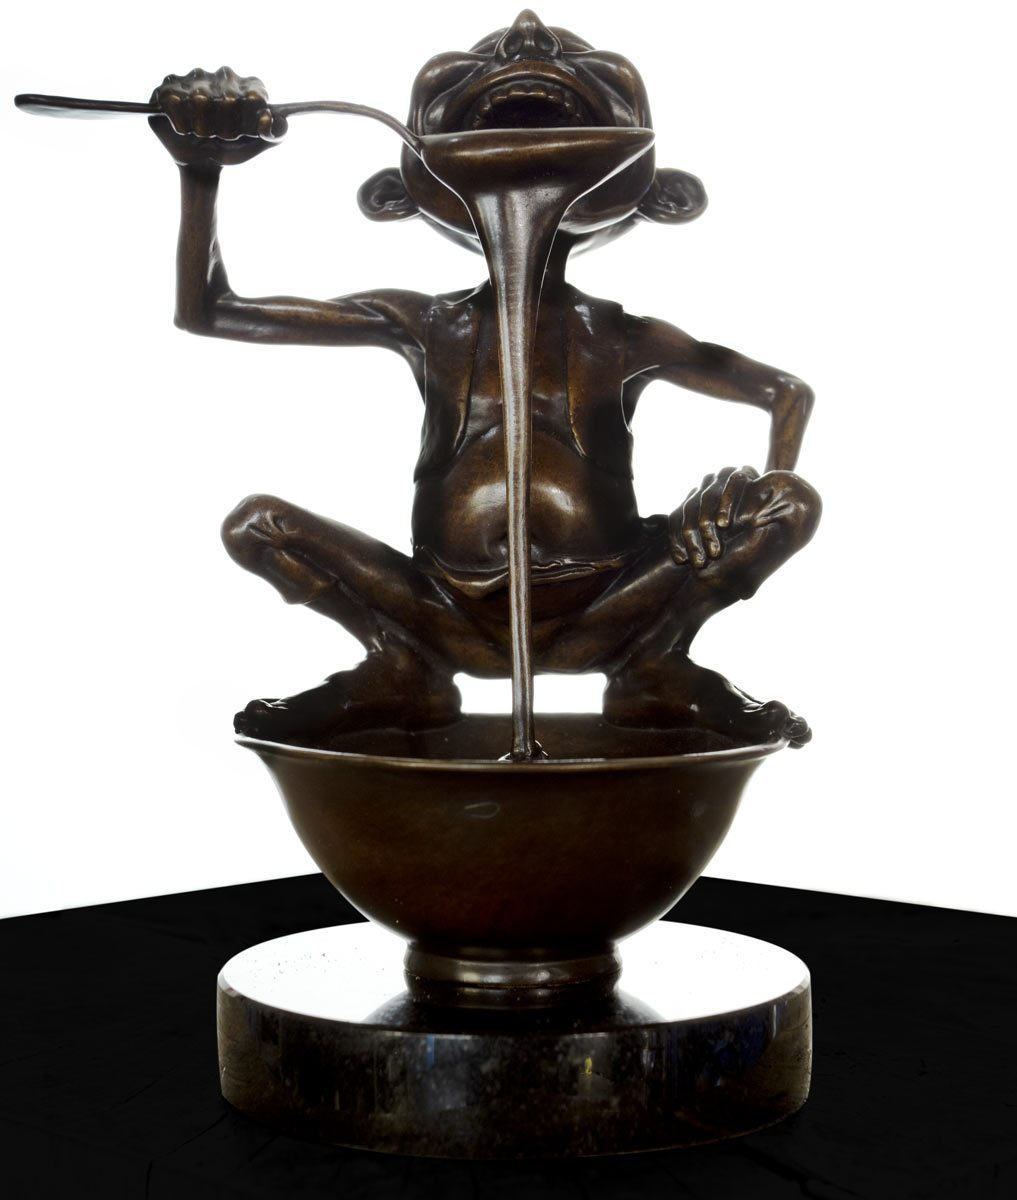 Little Pudding - Bronze Sculpture David Goode Loose